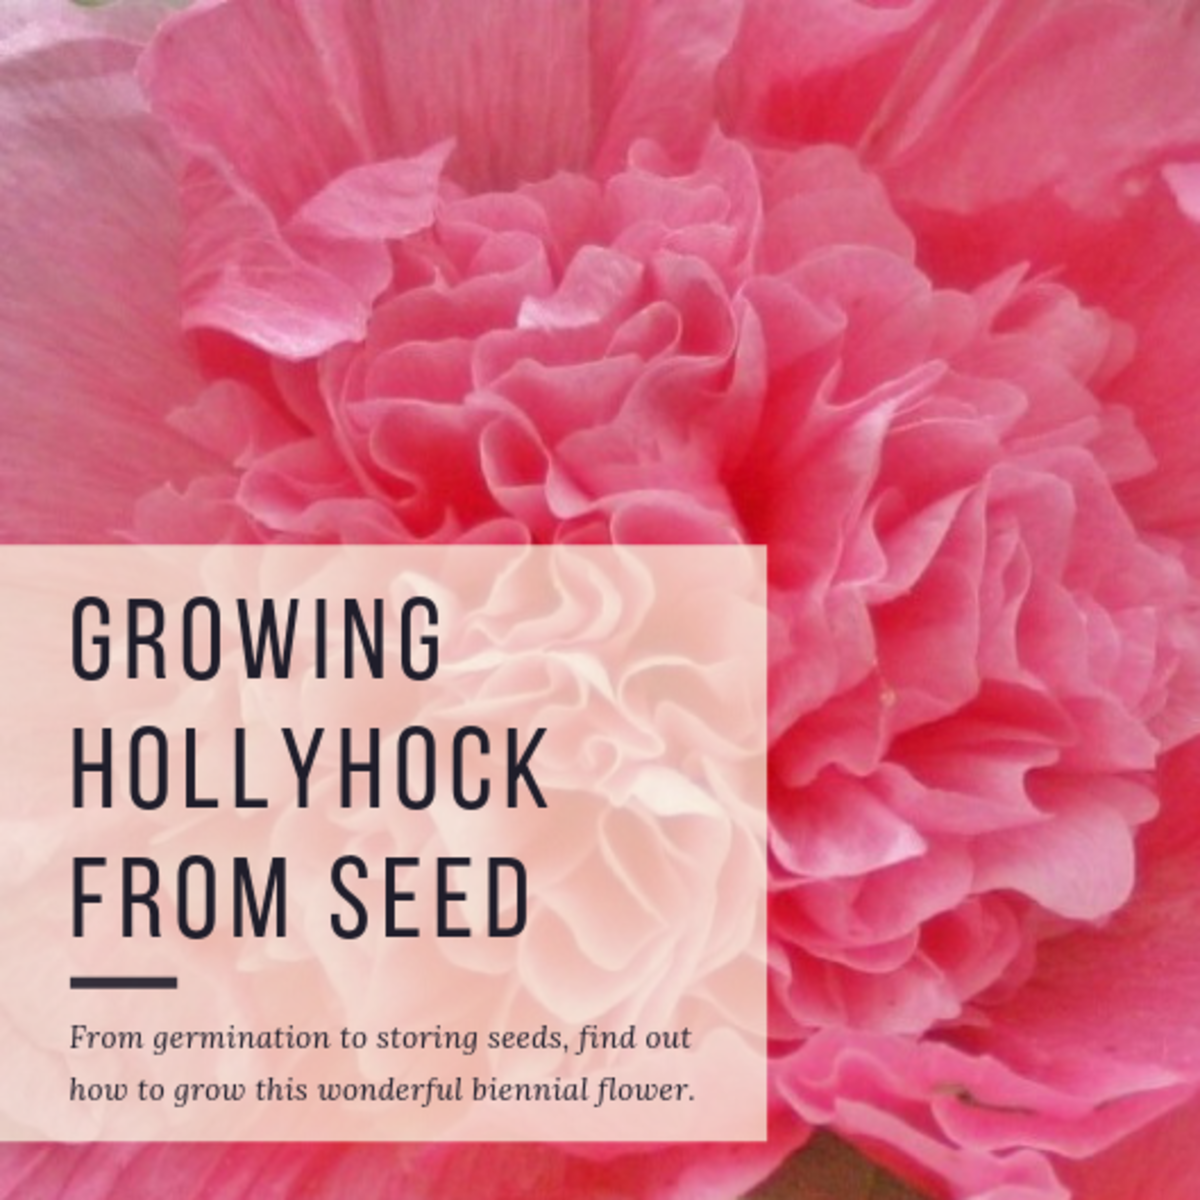 How to Grow Hollyhock From Seed